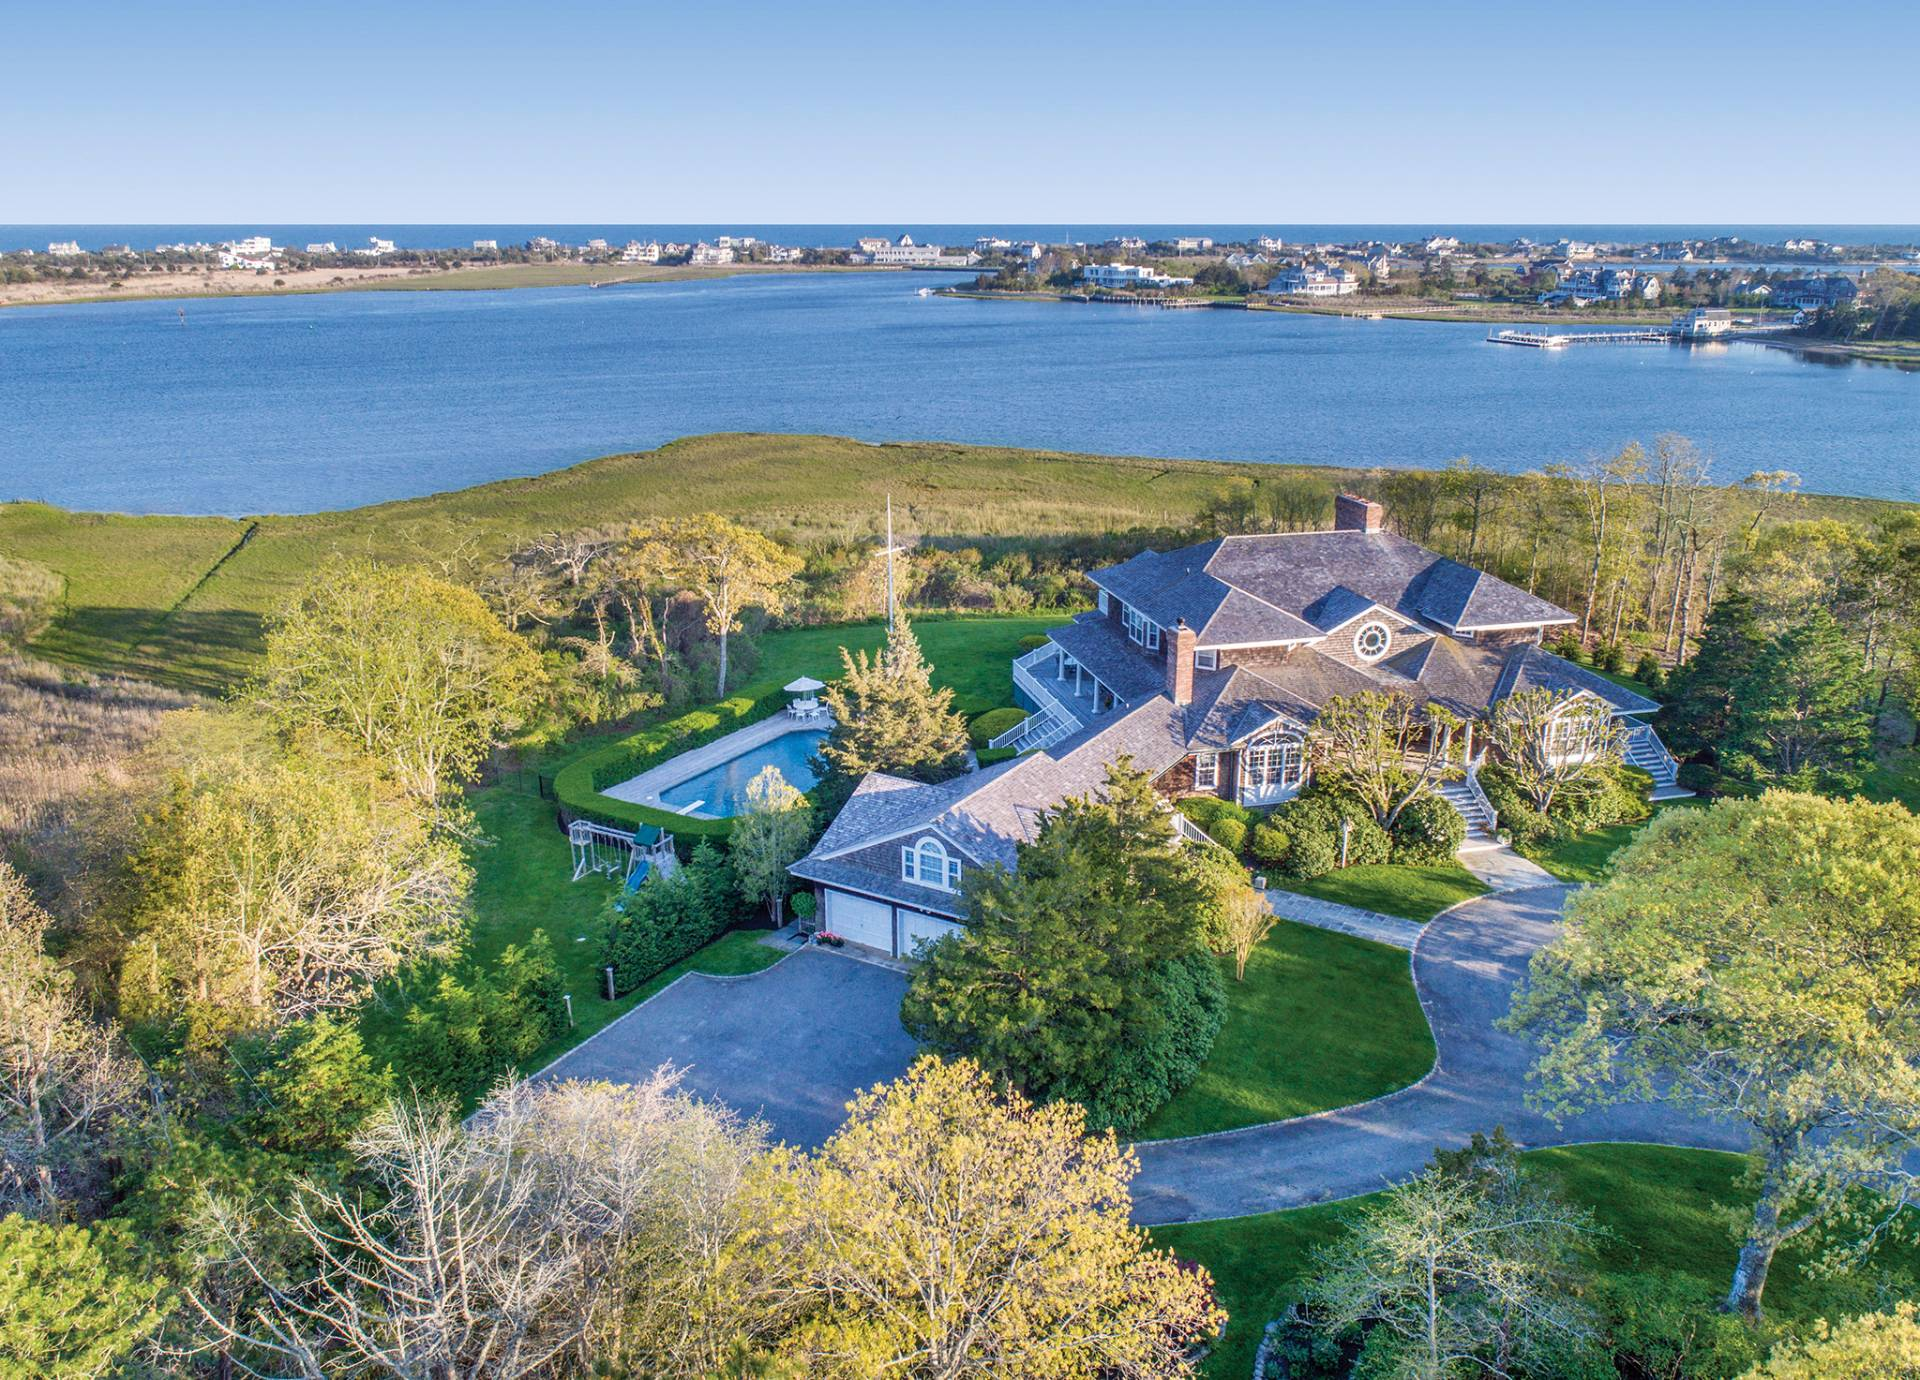 Casa Unifamiliar por un Venta en Exceptional Waterfront Location. Exceptional Price. 32 Penniman Point Road, Quogue, Nueva York